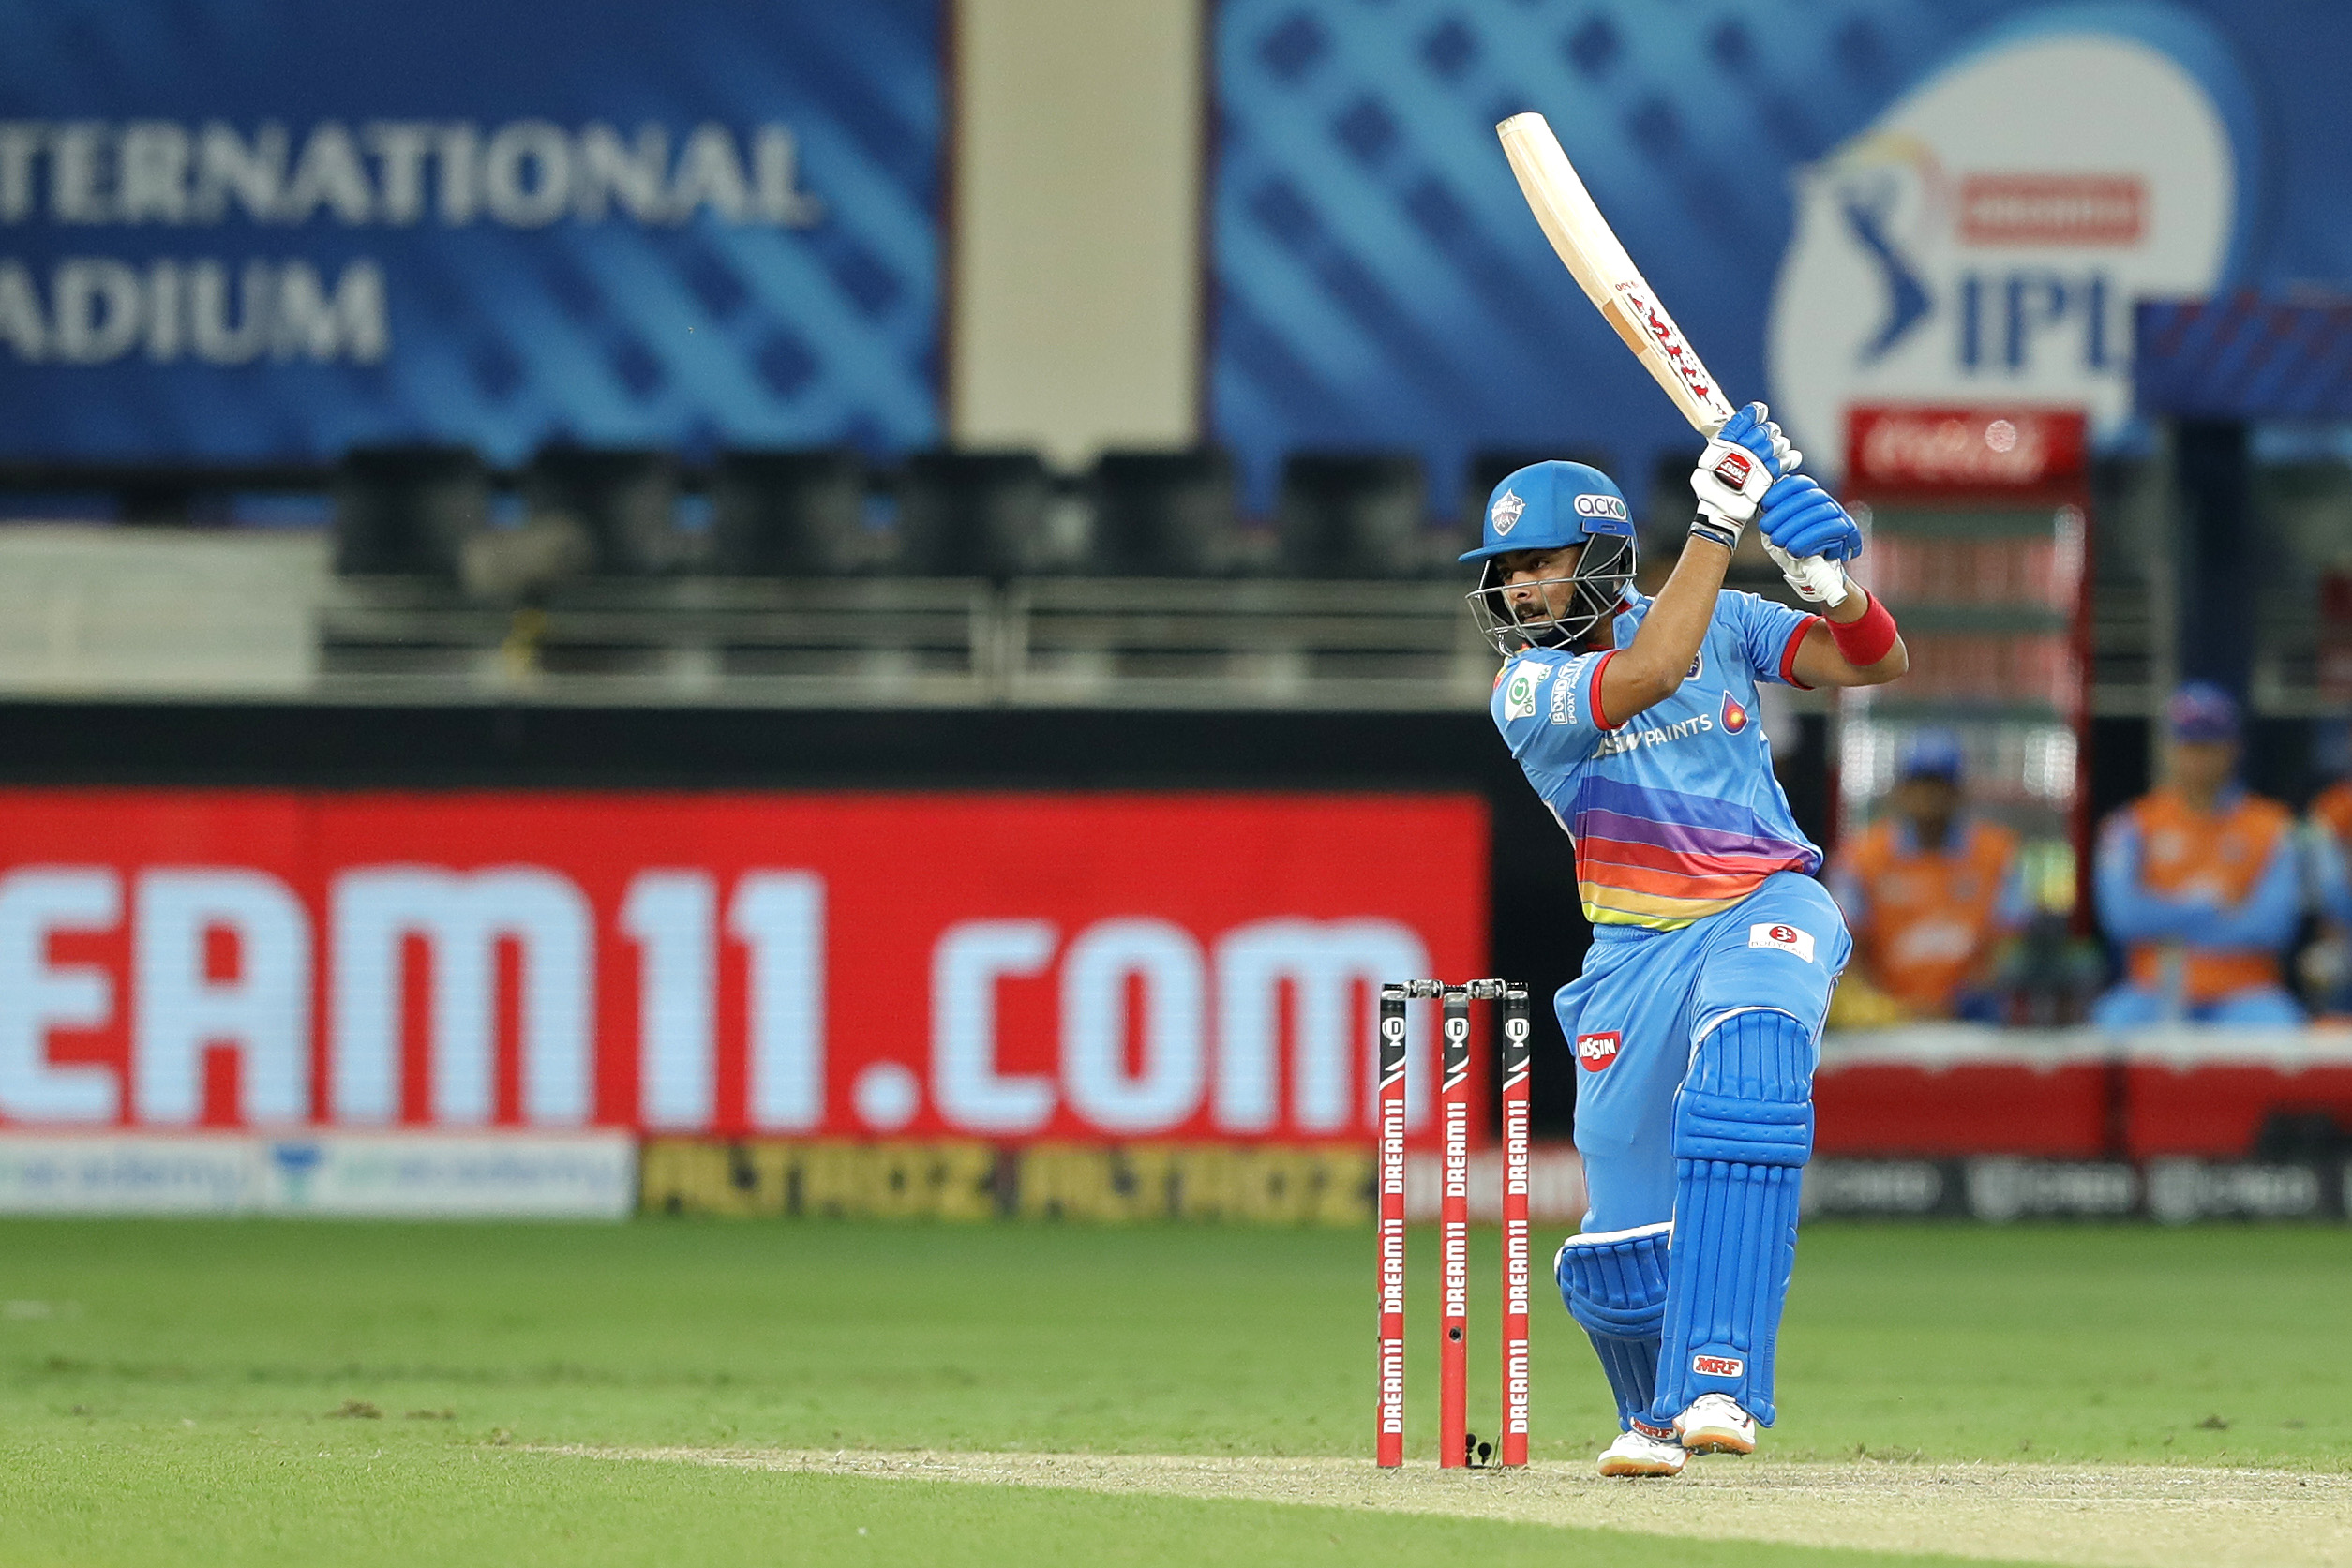 Prithvi Shaw missed his third fifty in IPL 13 against RCB | Twitter